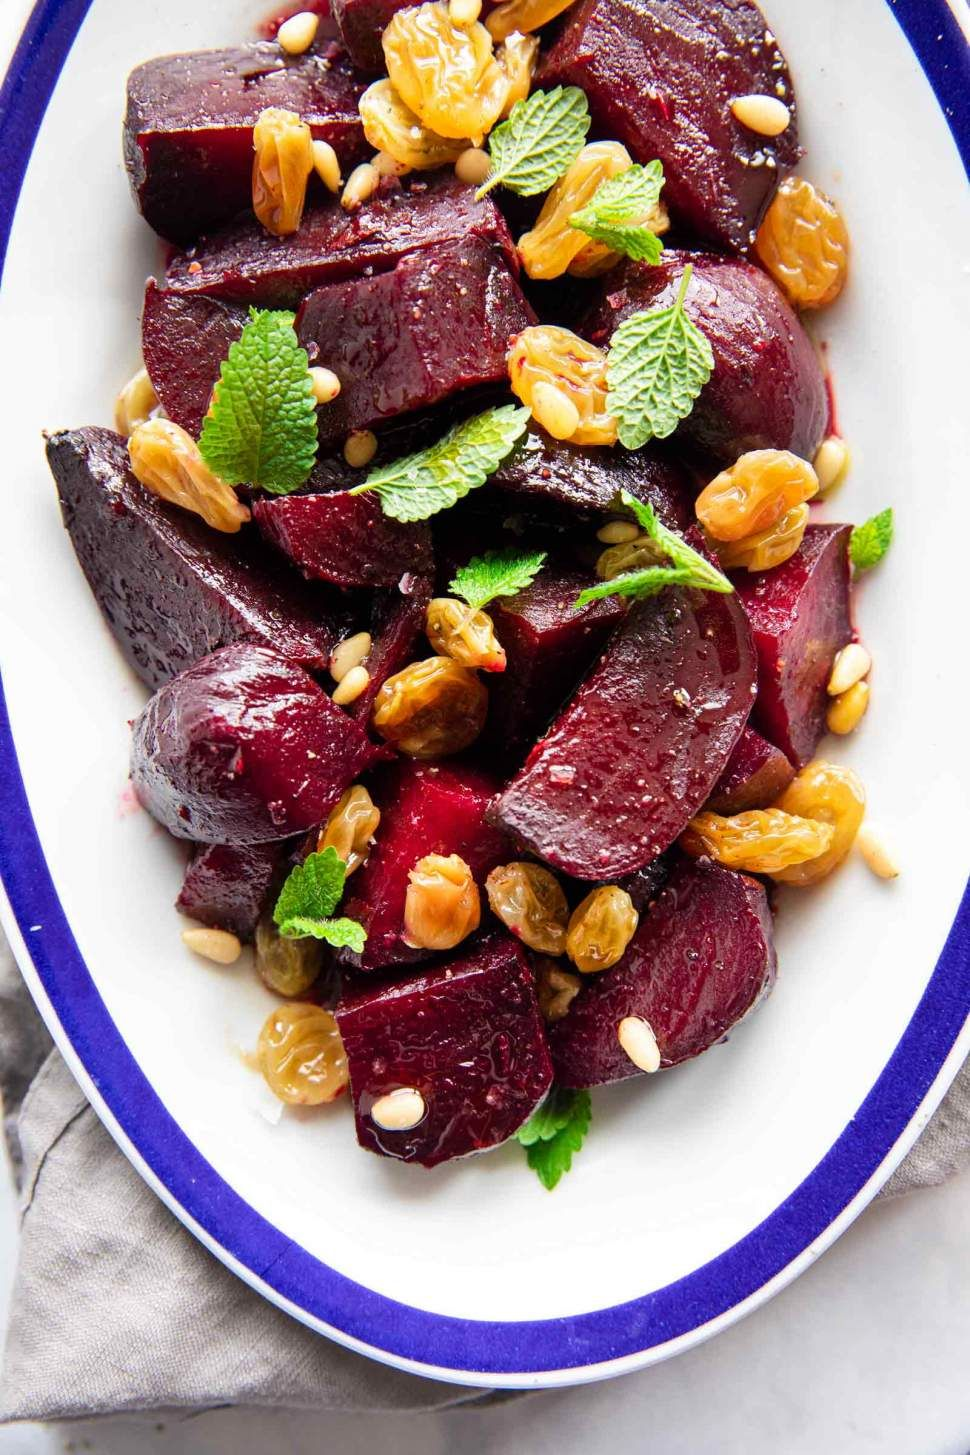 Pickled Beets Recipe Pickled Beets Beet Recipes Pickled Beets Recipe